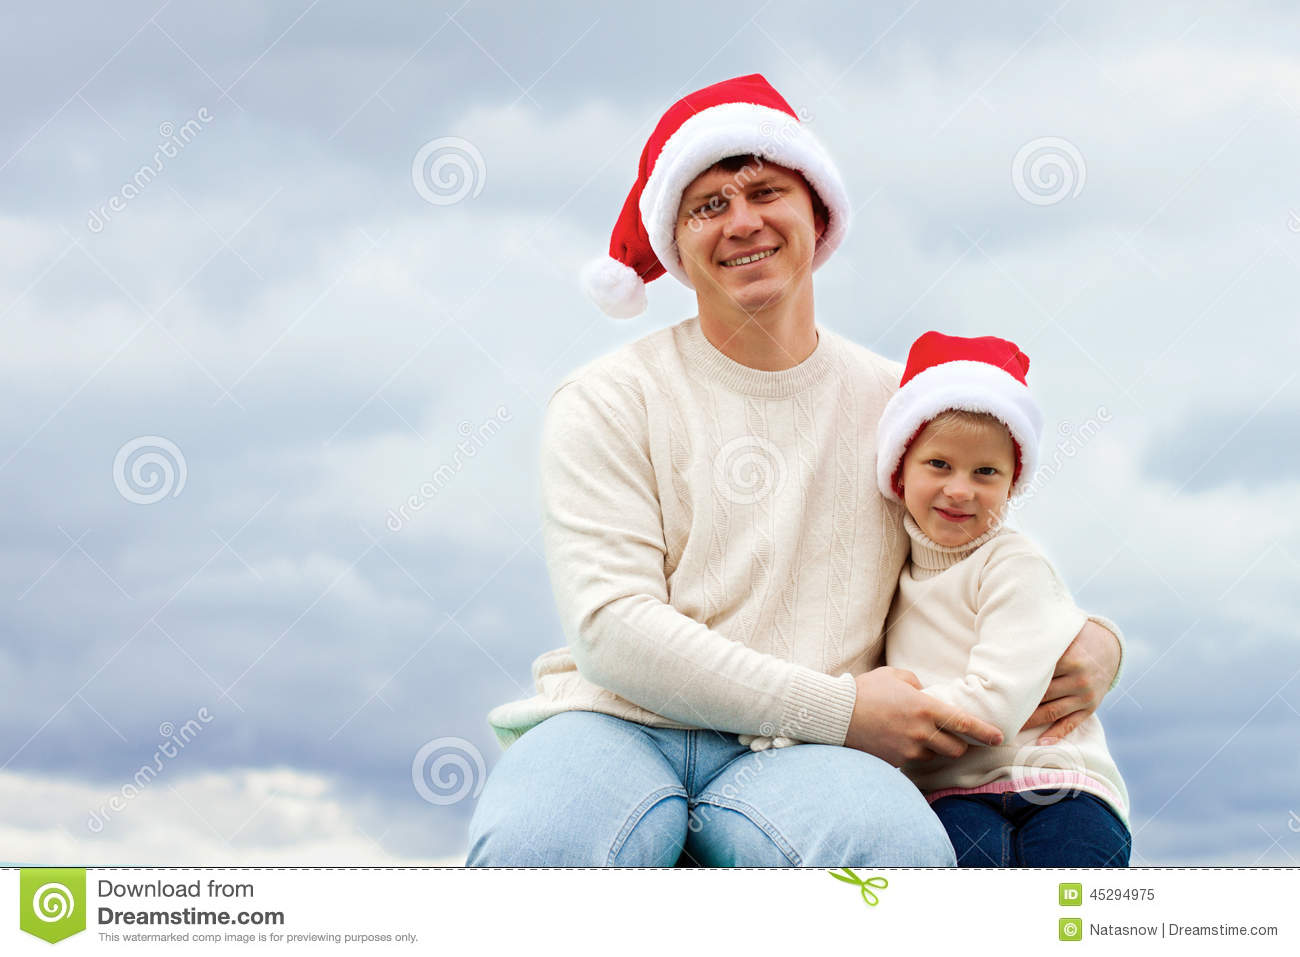 Portrait Of Father And Daughter In Christmas Hats Stock Image ... dd78f91c7b9